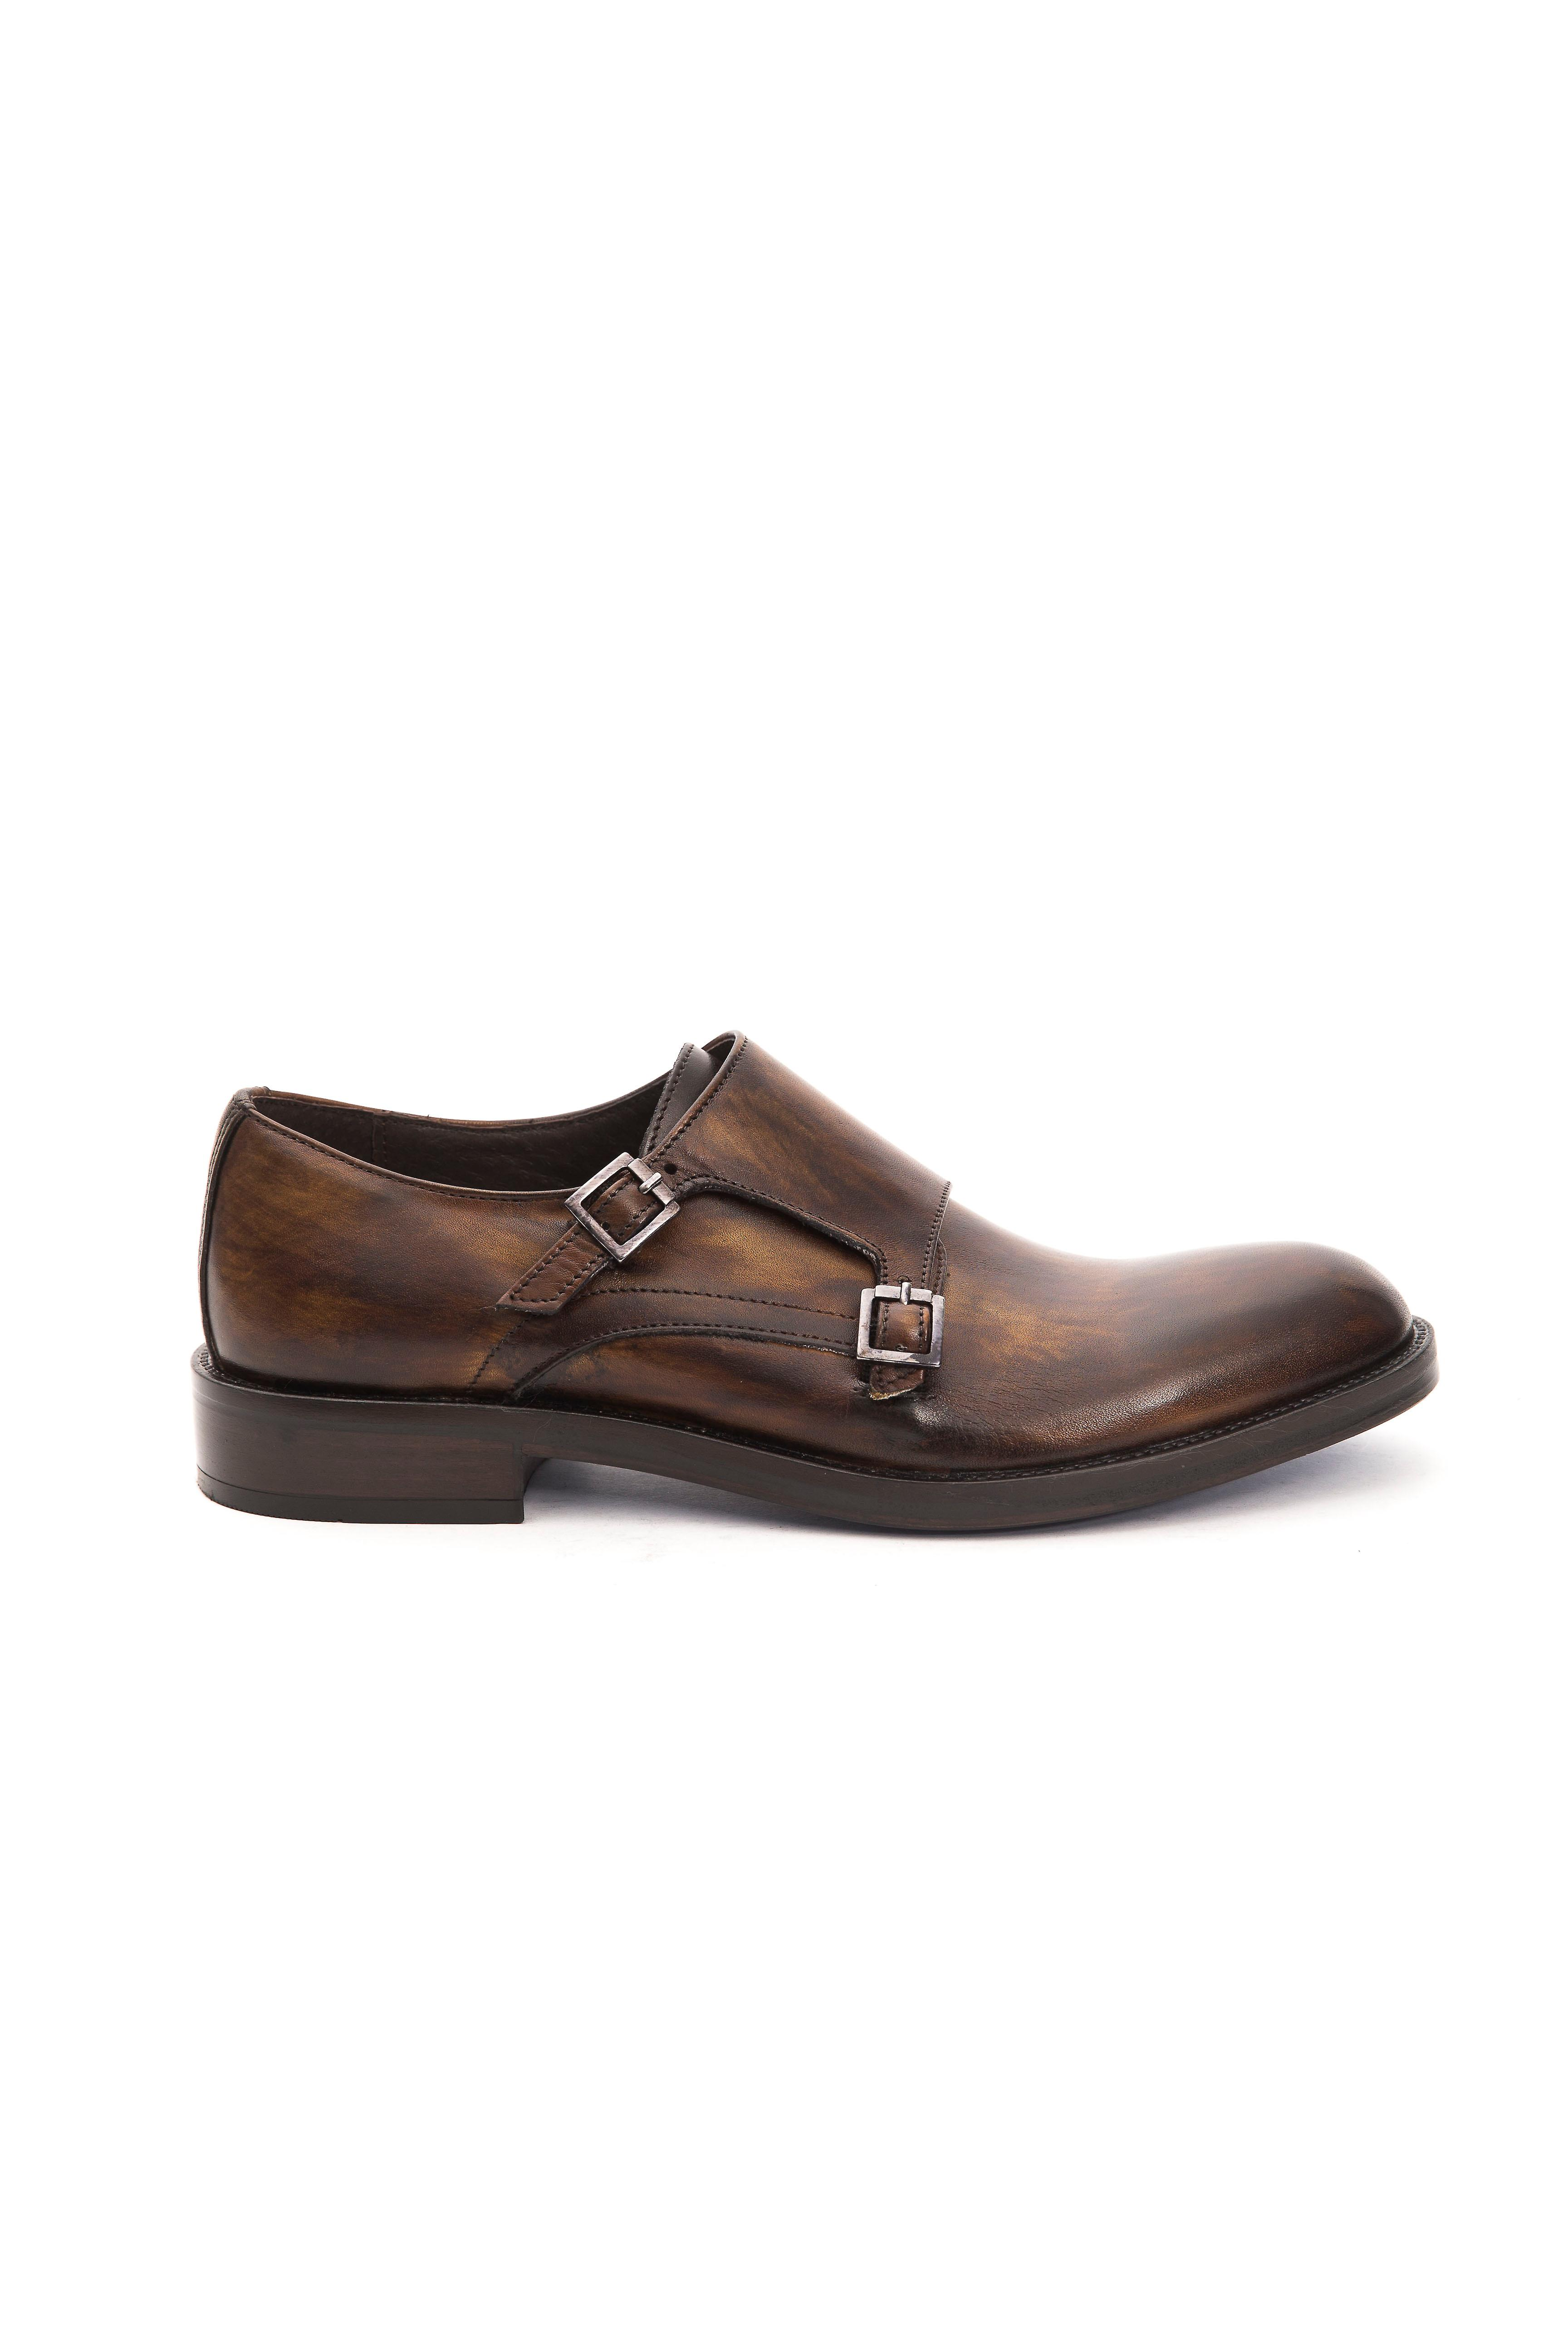 Man Trussardi Shoes Brown Collection Sorrento rHq4nHI